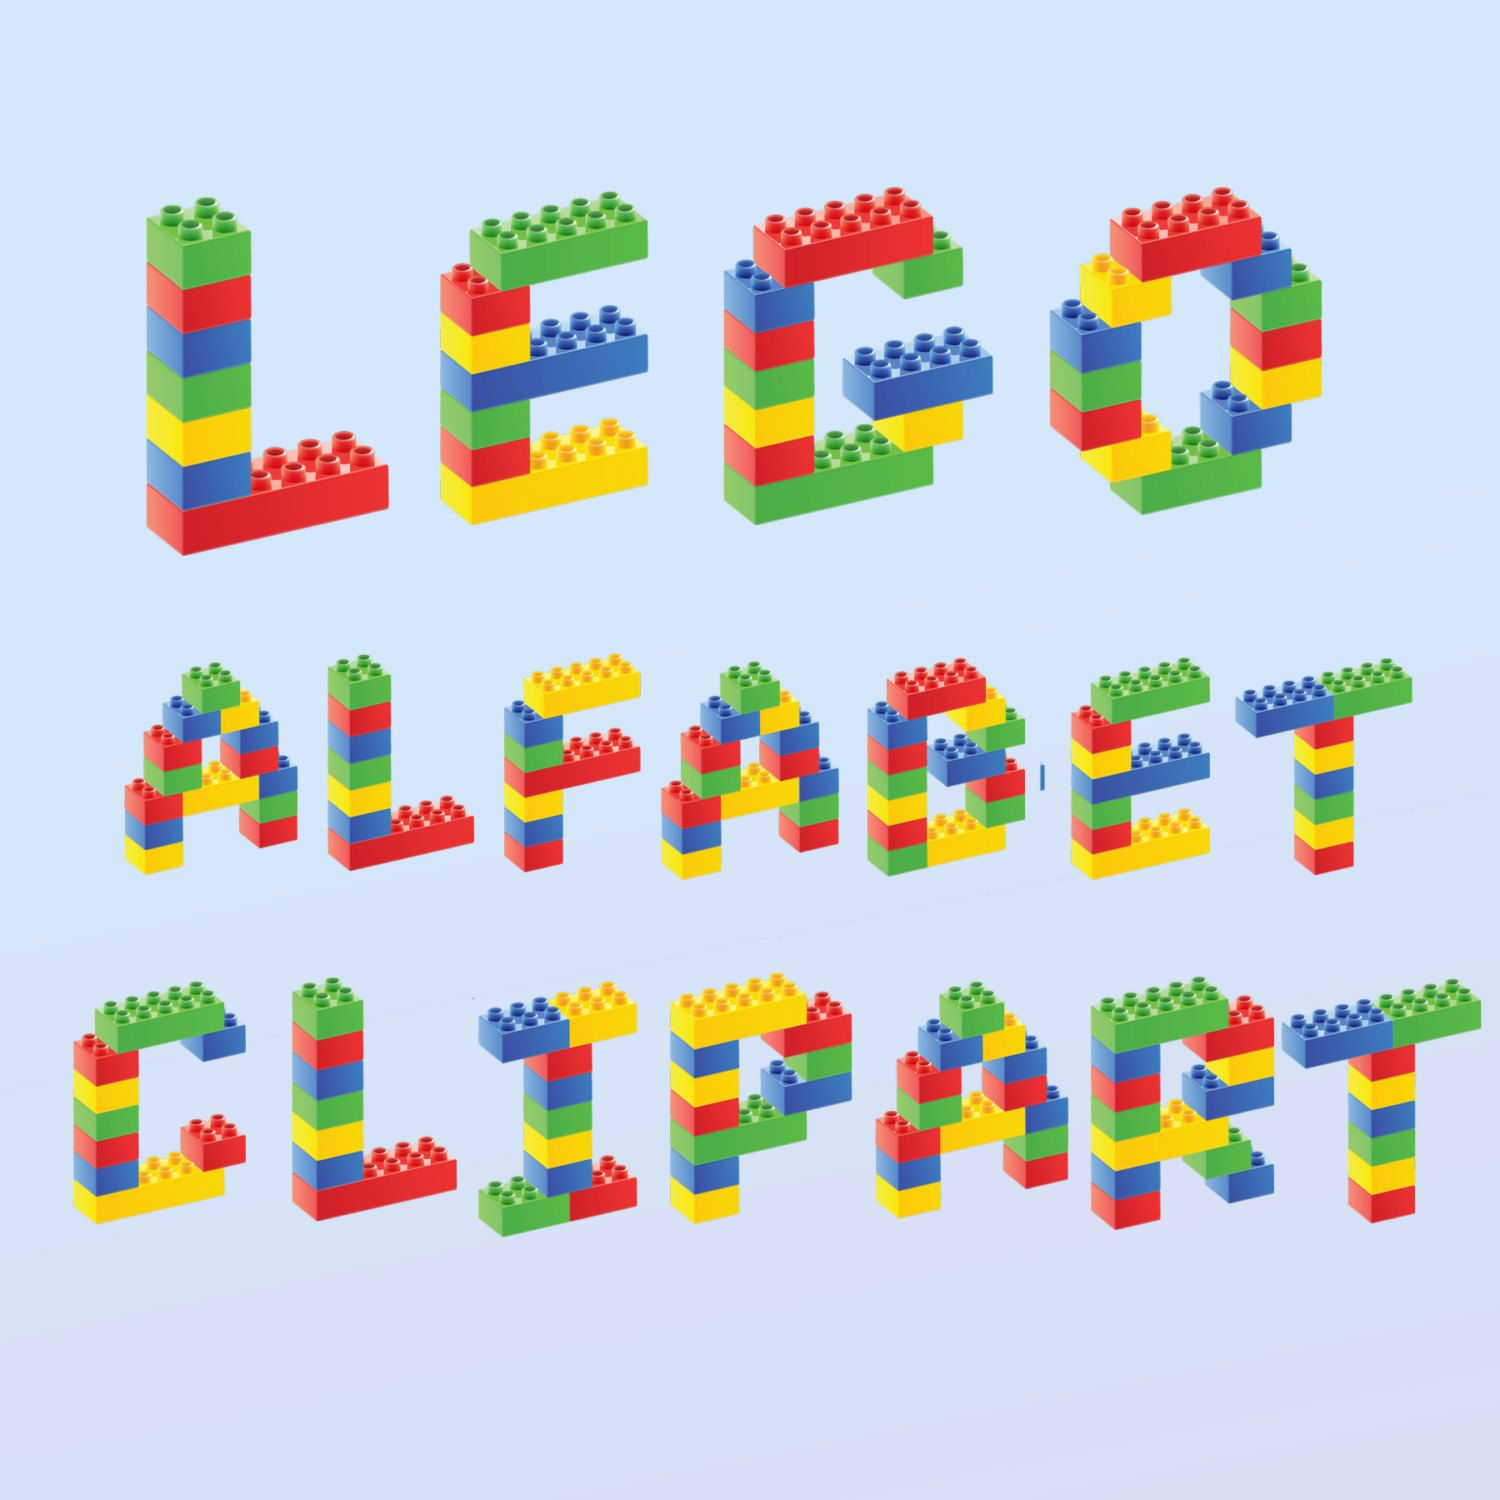 photograph about Lego Font Printable titled lego font - Google Glimpse Lego Functions Lego font, Lego